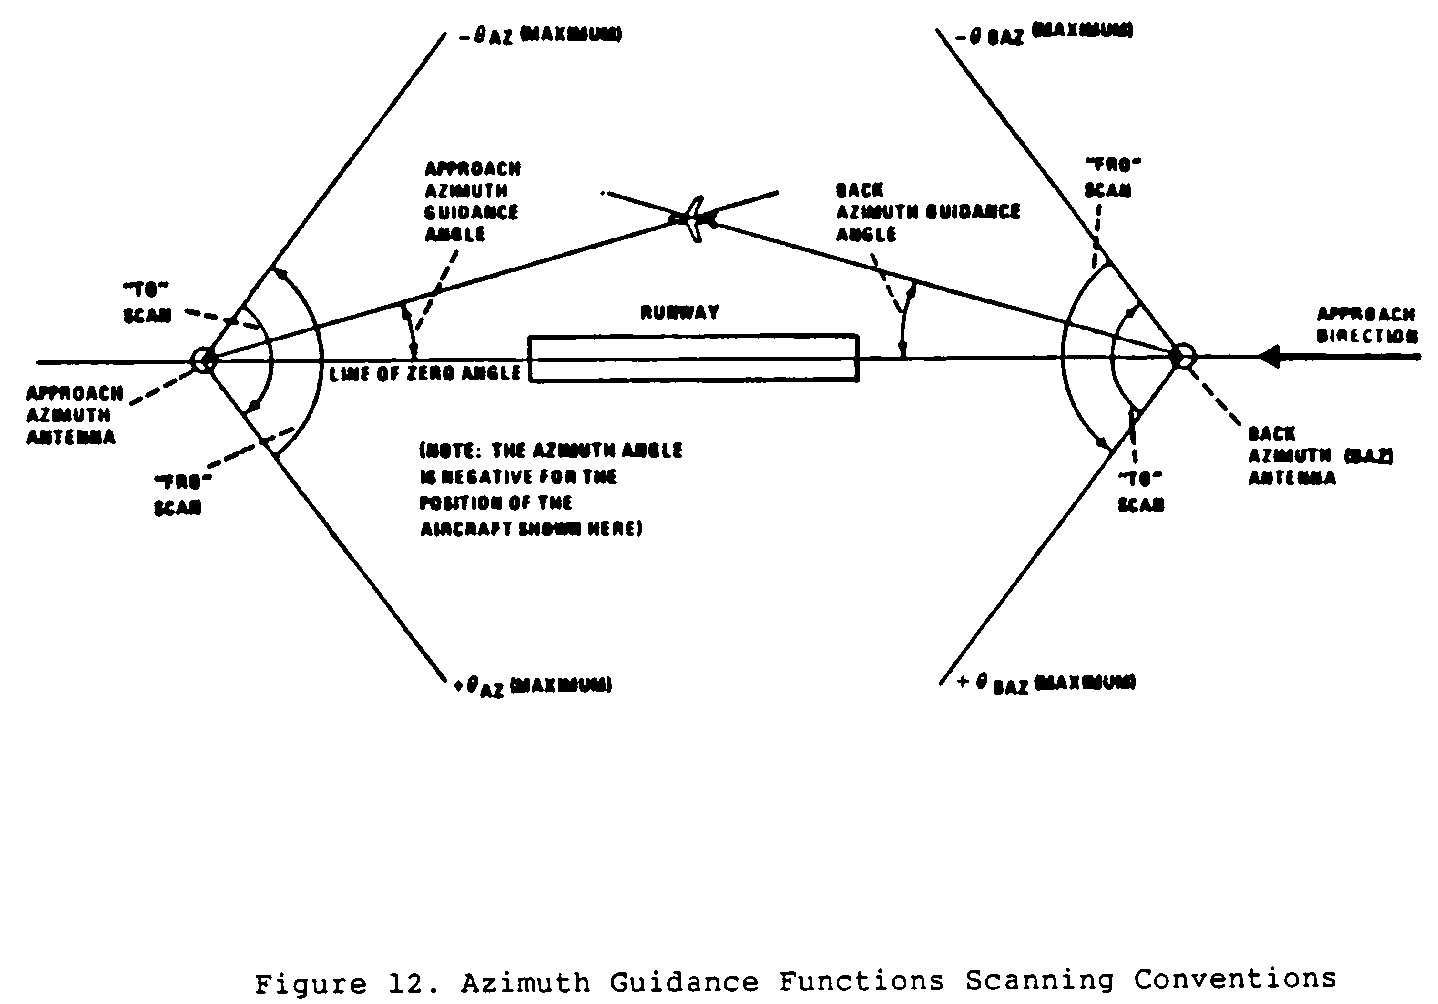 Graphic of (l) Scanning conventions. Figure 12 shows the approach azimuth and back azimuth scanning conventions.